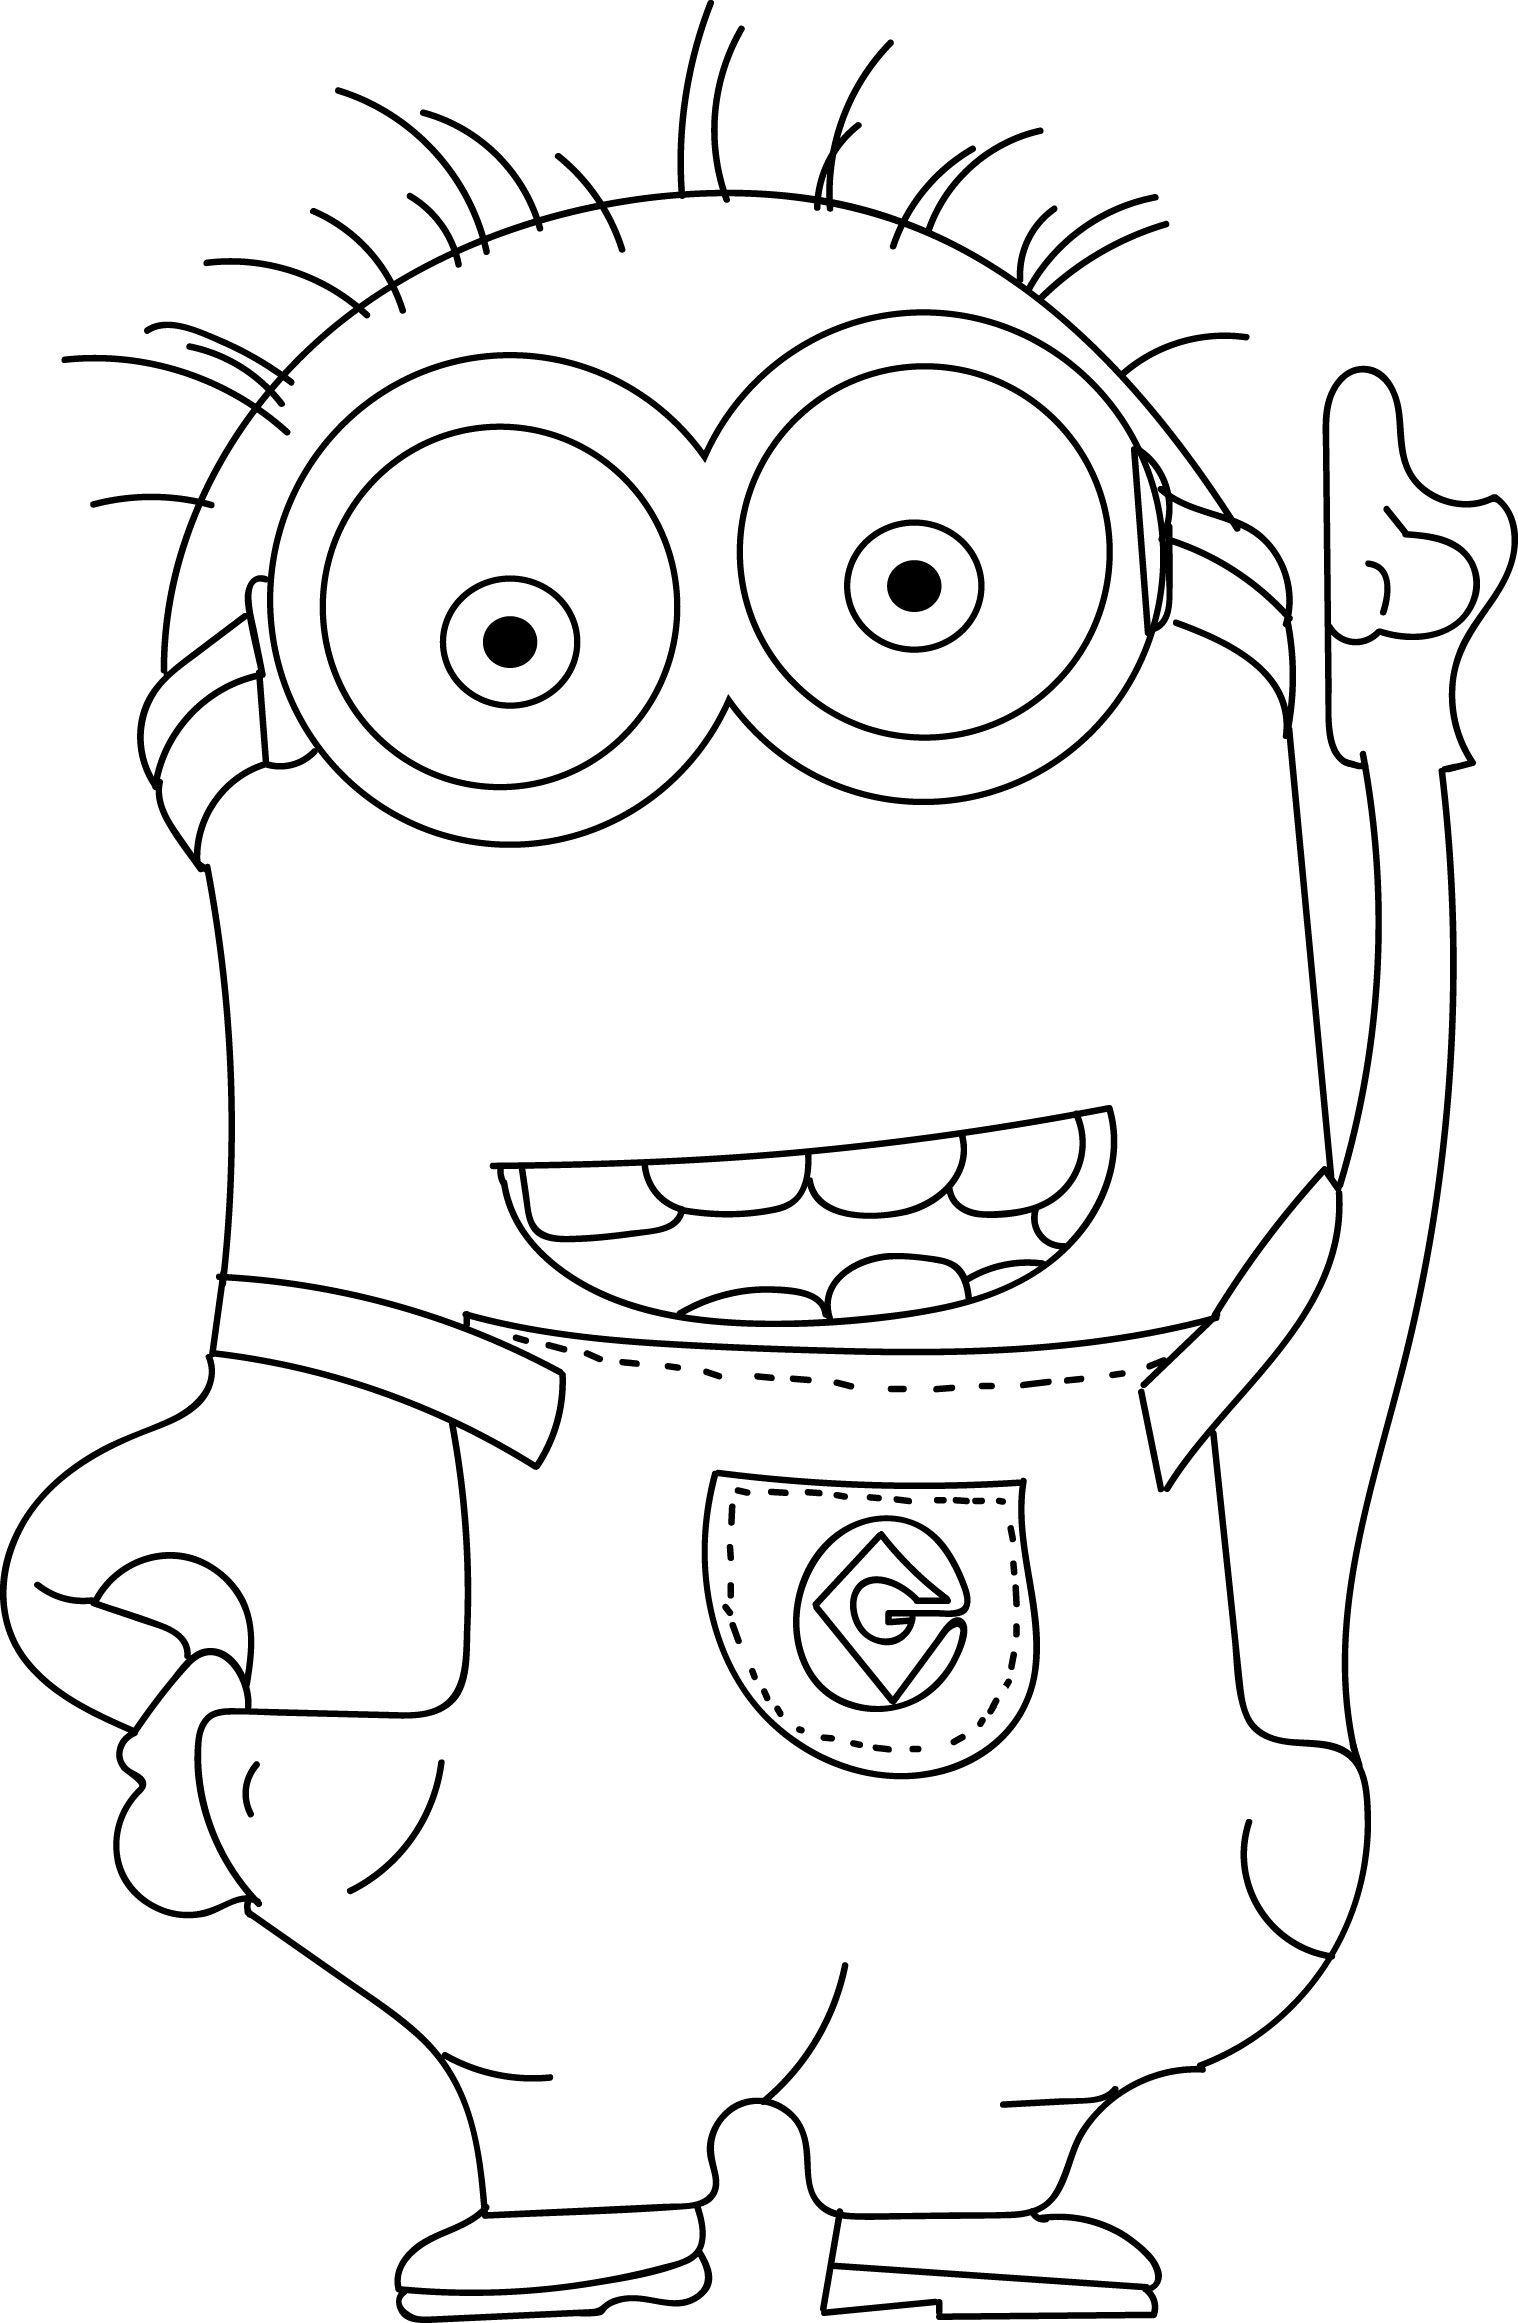 P 40 coloring pages - Cool Minions Coloring Pages Check More At Http Wecoloringpage Com Minions